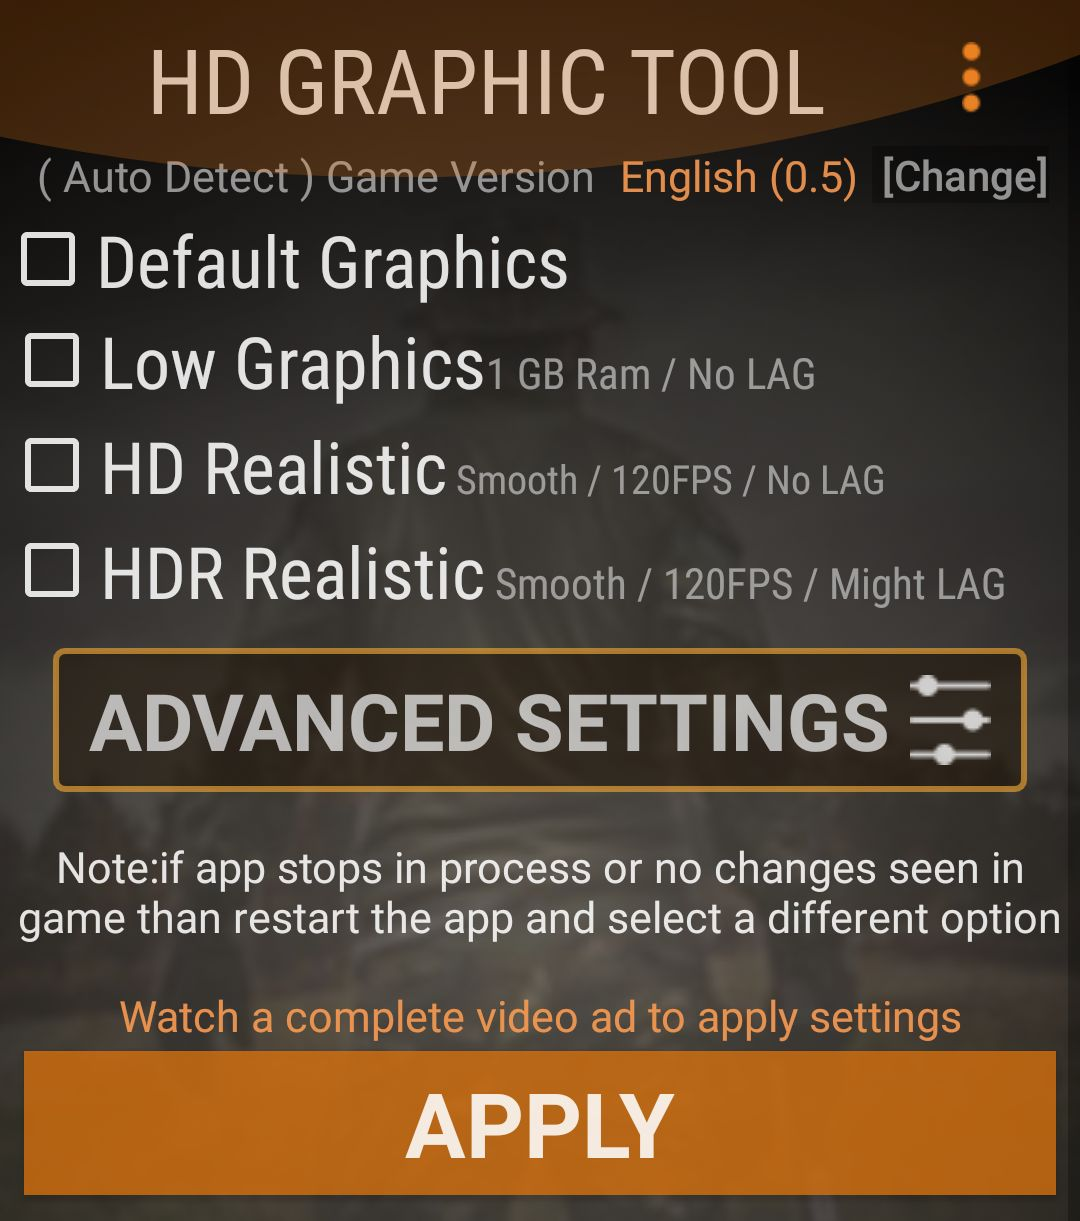 Increase Fps In Pubg Mobile And Fix The Lag Tech Centurion - hd graphic tool for pubg mobile